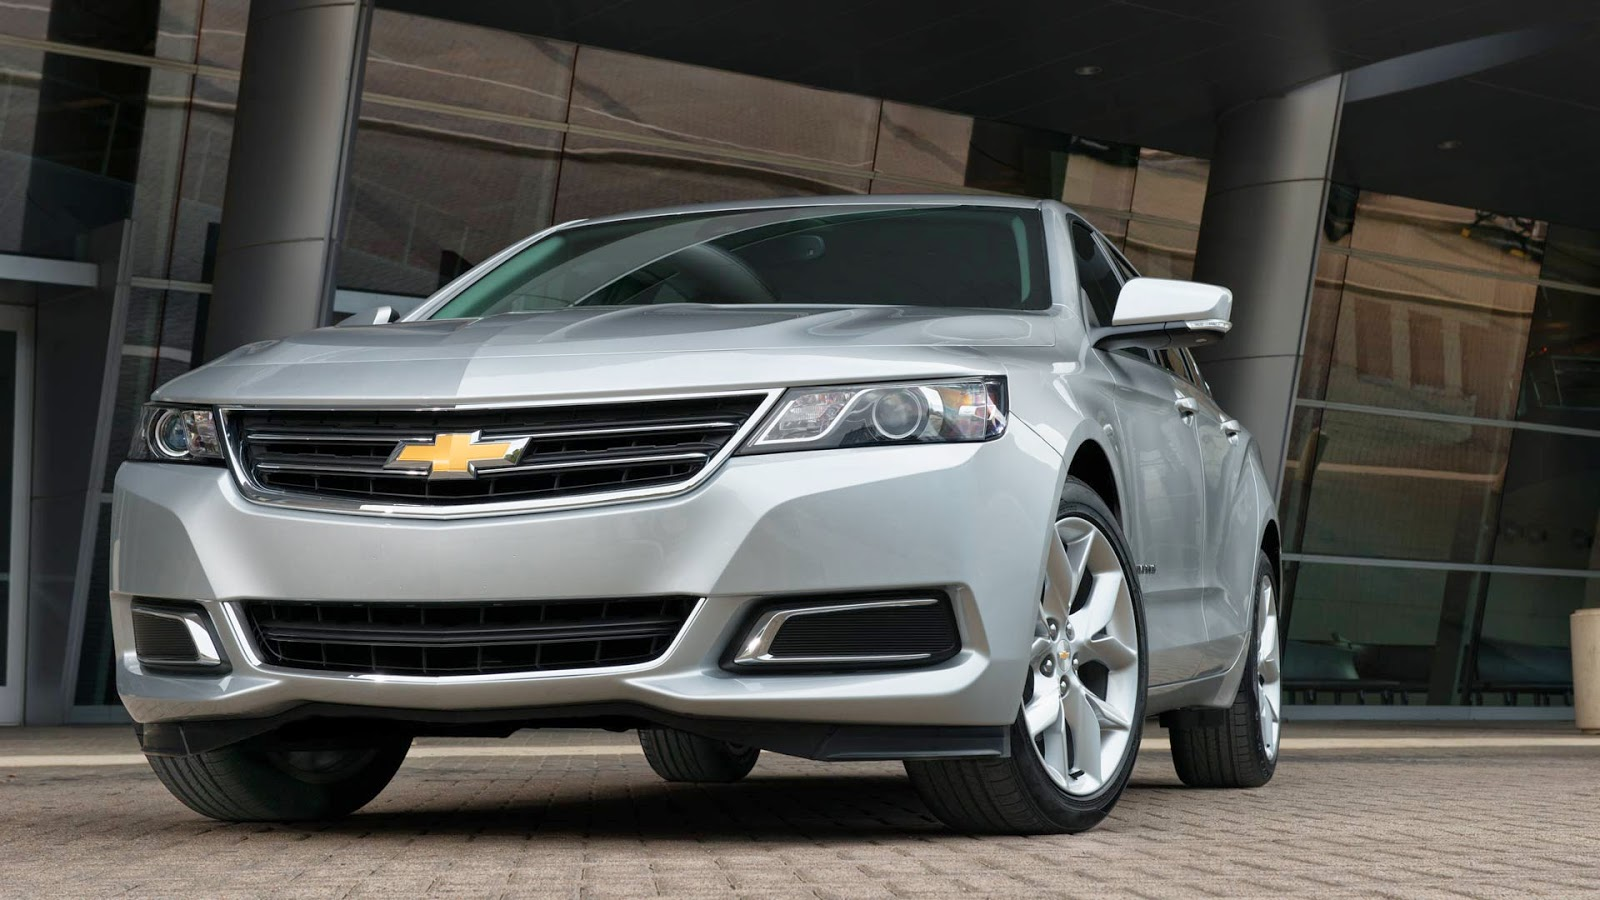 2015 Chevy Impala Standard Stop/Start Technology